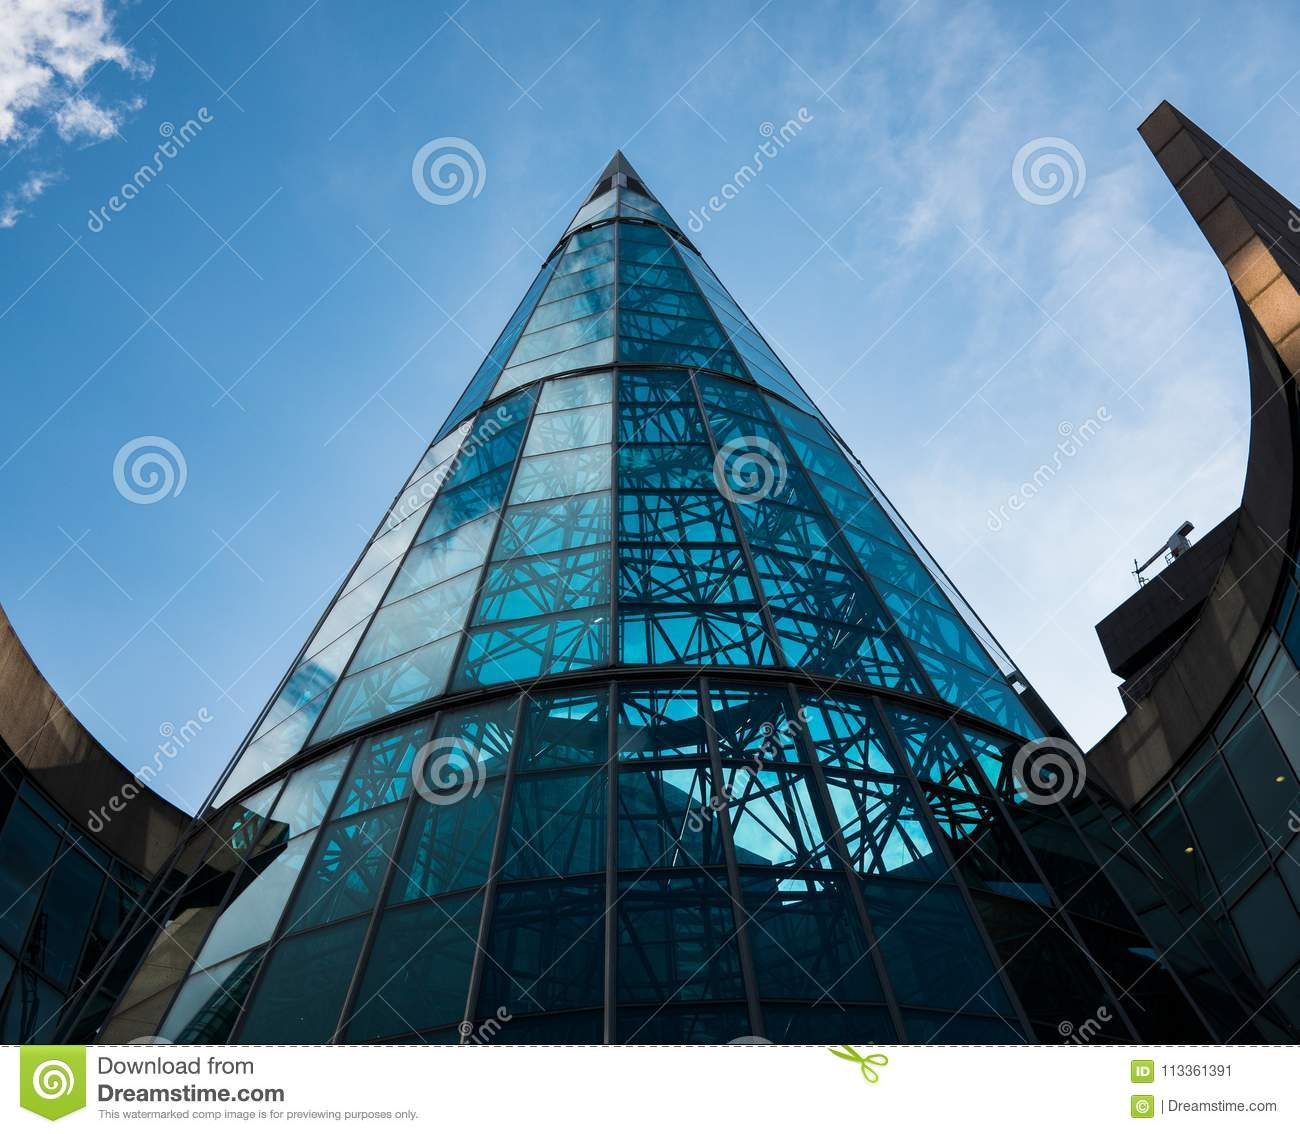 Beautiful modern architecture on this curved glass building